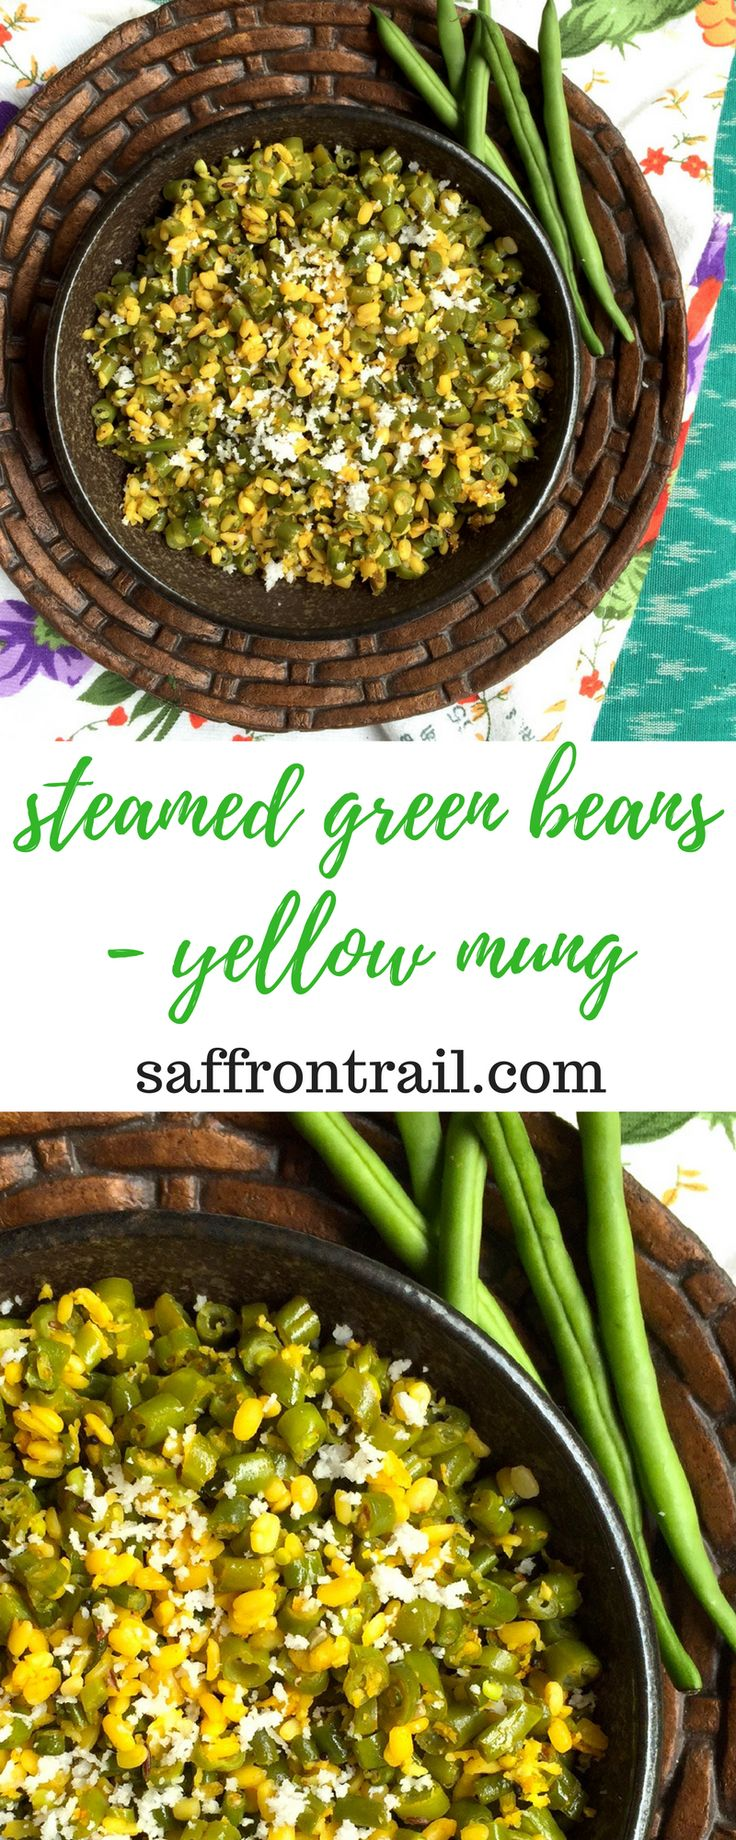 {healthy | vegan | gluten free} Recipe for simple steamed green beans with yellow mung | Green beans nutrition | Cooking tips Recipe on saffrontrail.com